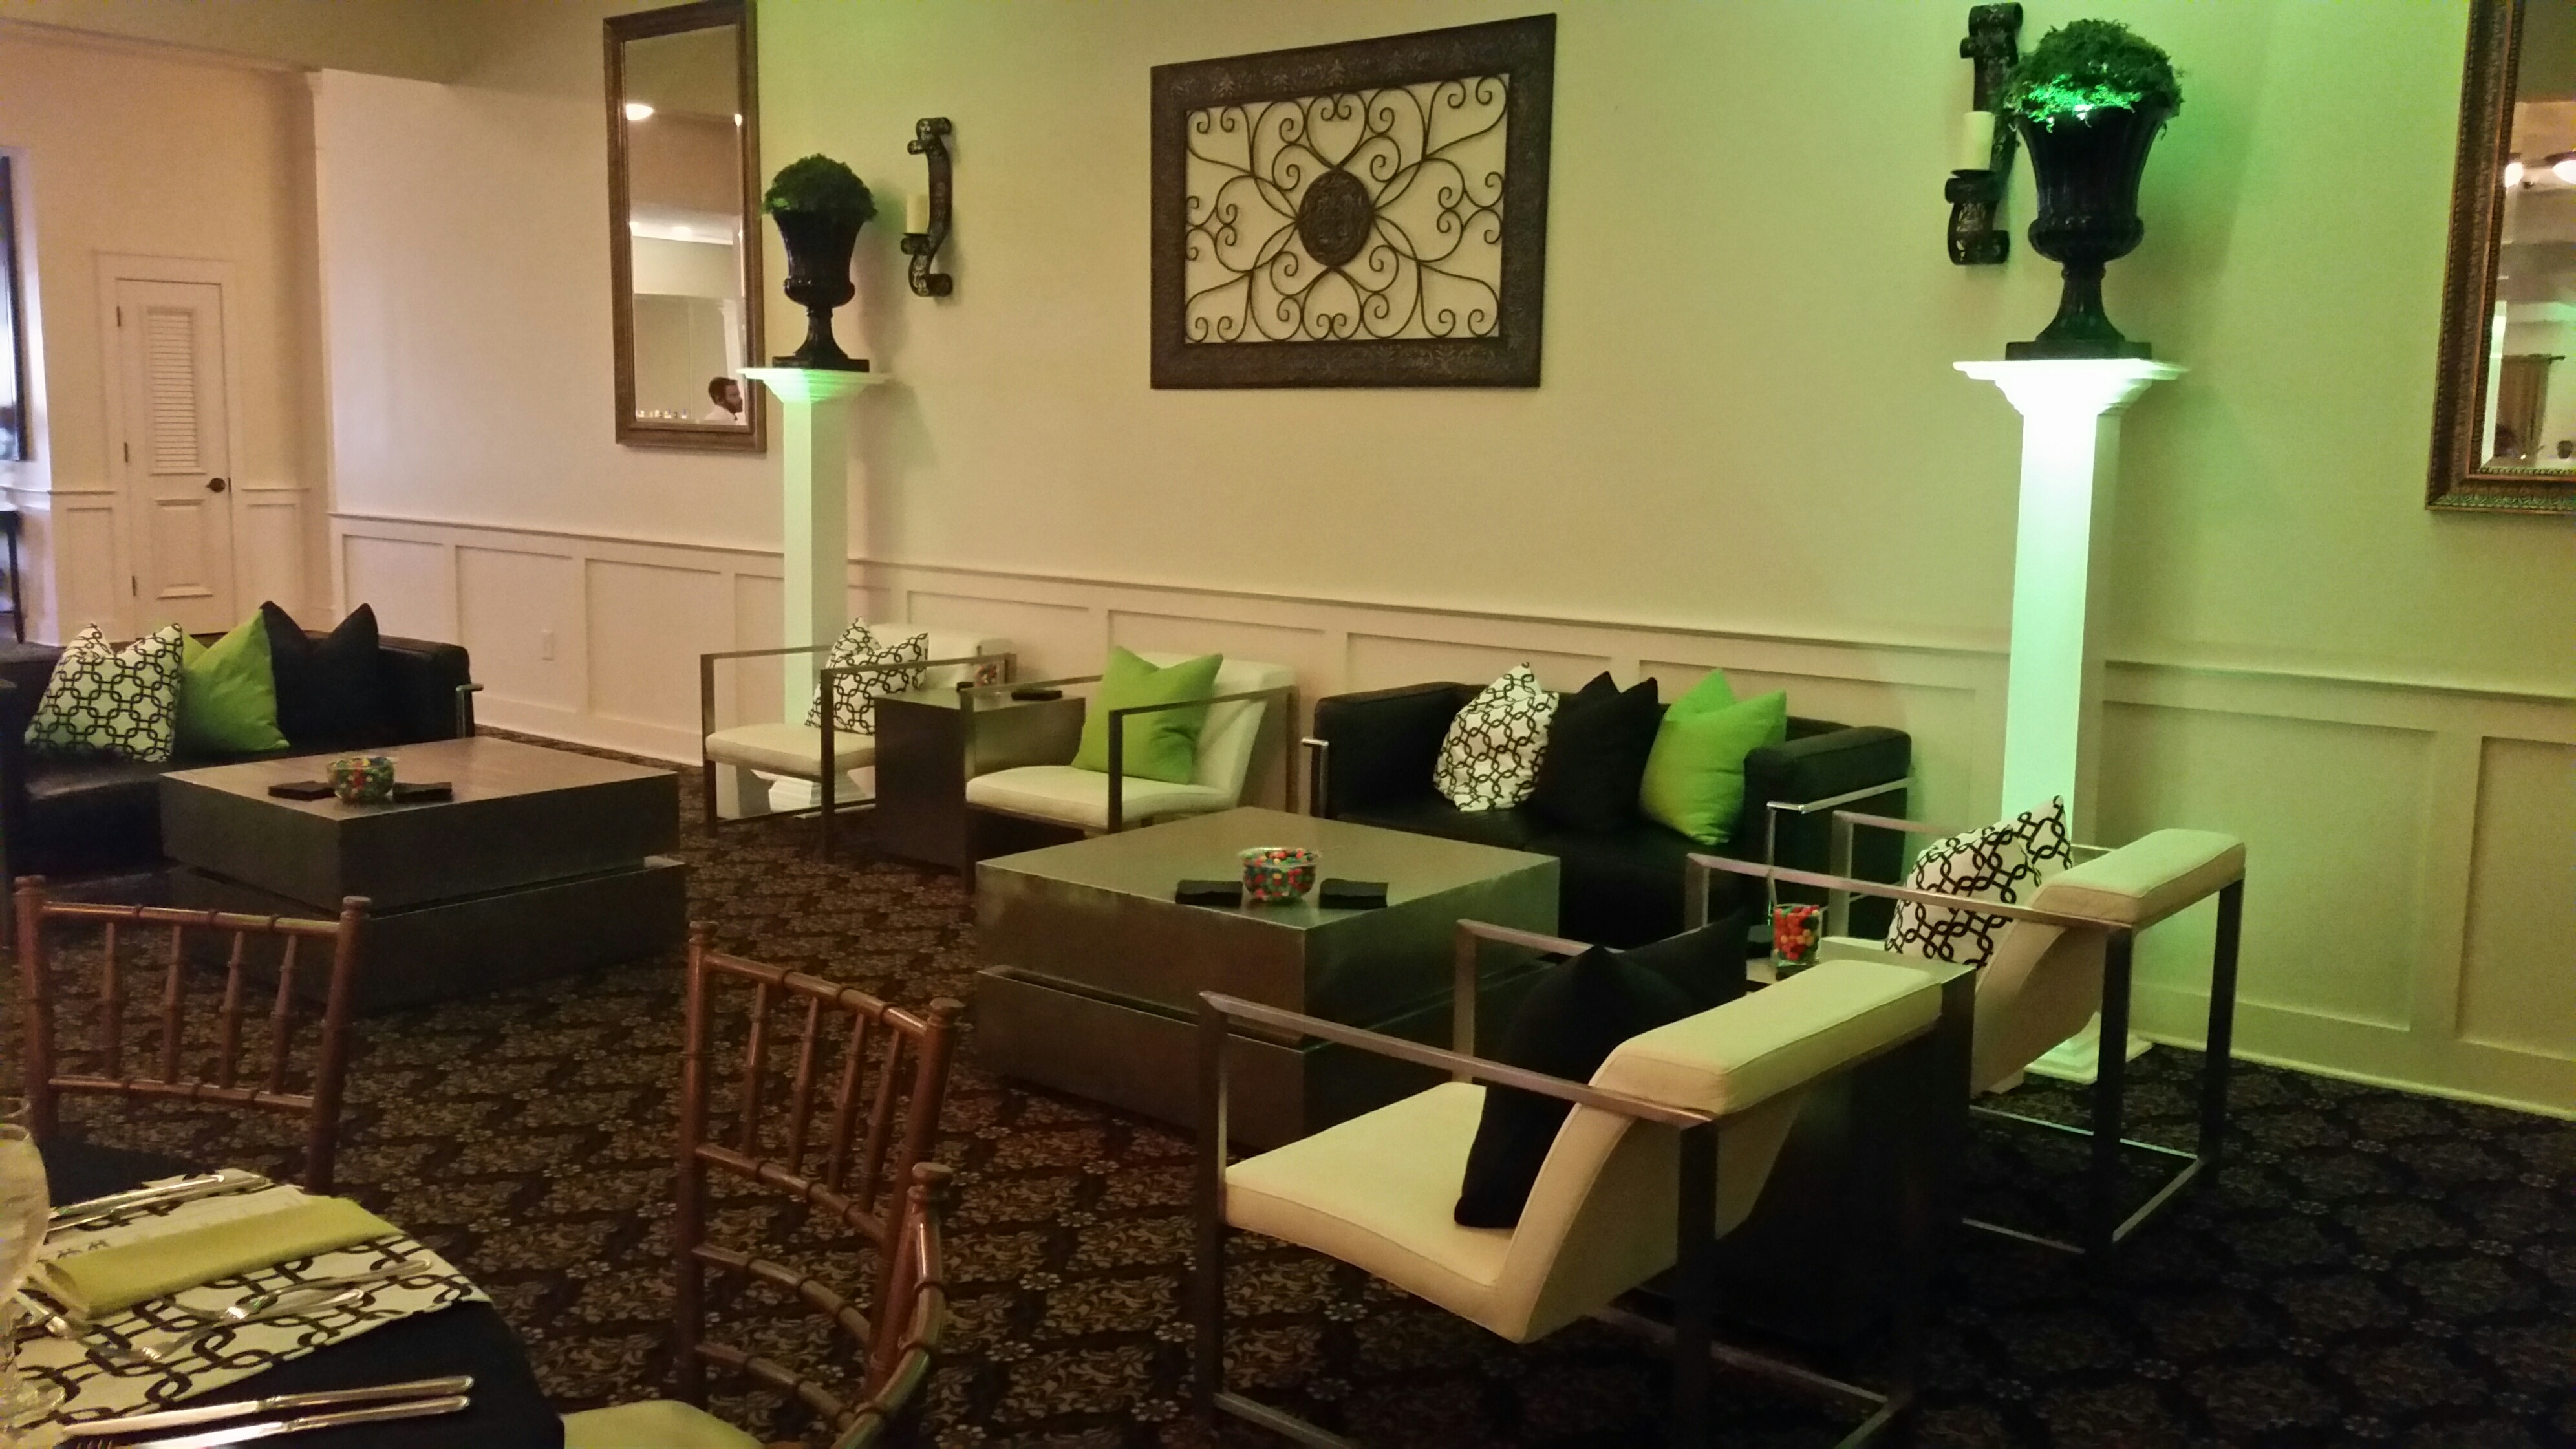 long island event bar mitzvah, bat mitzvah, anniversary, party venue